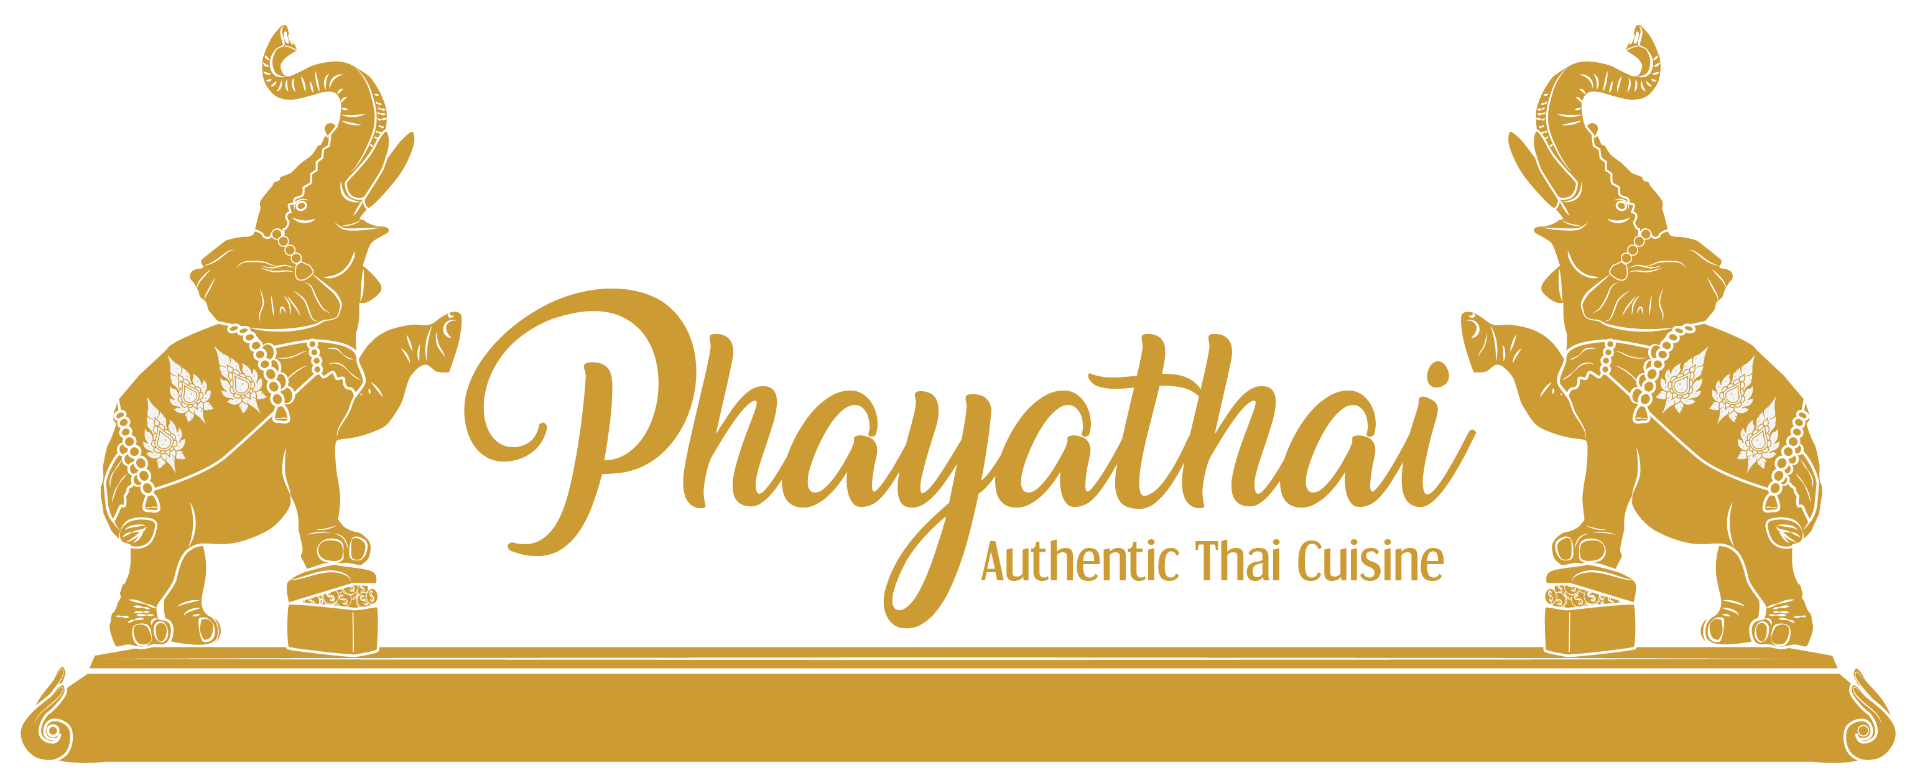 _New Phayathai Logo - No BKGD-300dpi - Copy.png